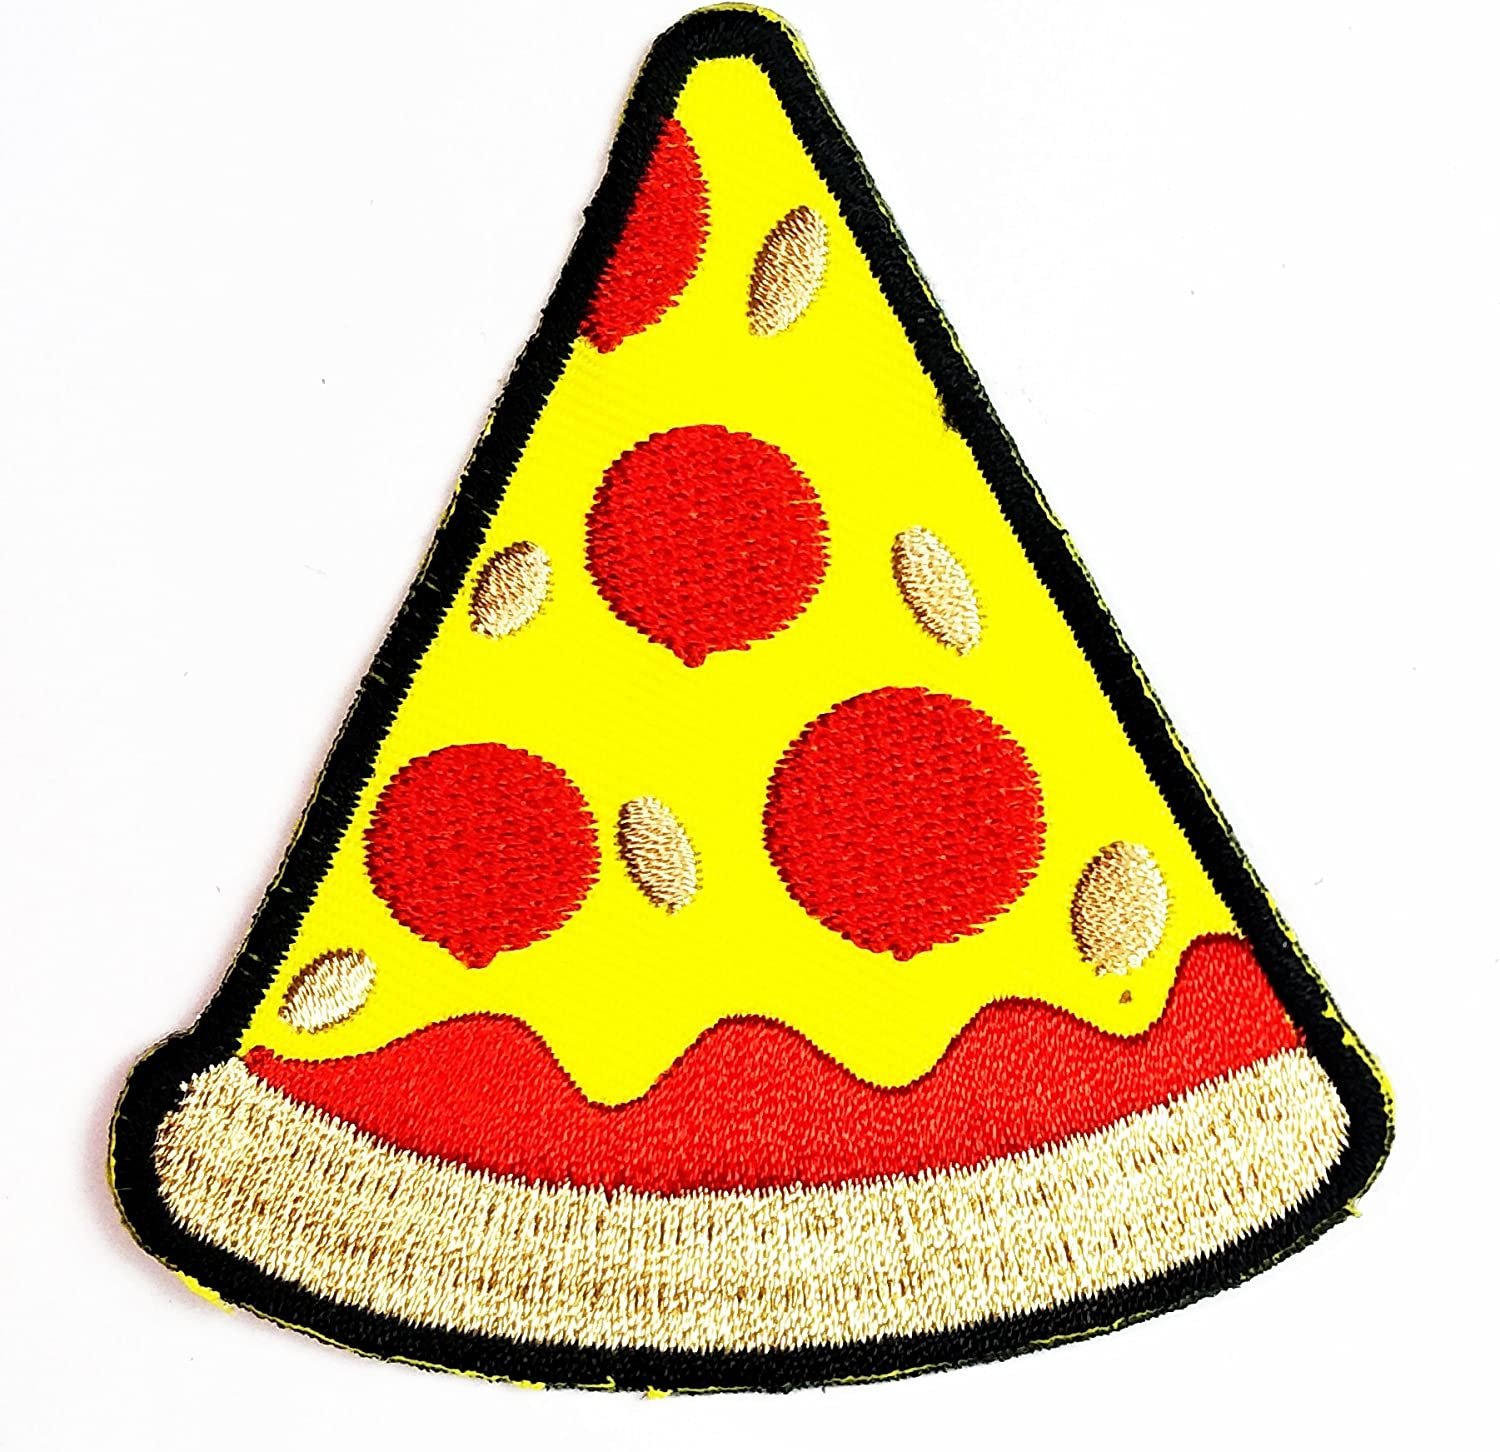 HHO Pizza Slice Italian Fast Food Patch Logo Sew Iron on Embroidered Appliques Patch Embroidered DIY Patches, Cute Applique Sew Iron on Kids Craft Patch for Bags Jackets Jeans Clothes